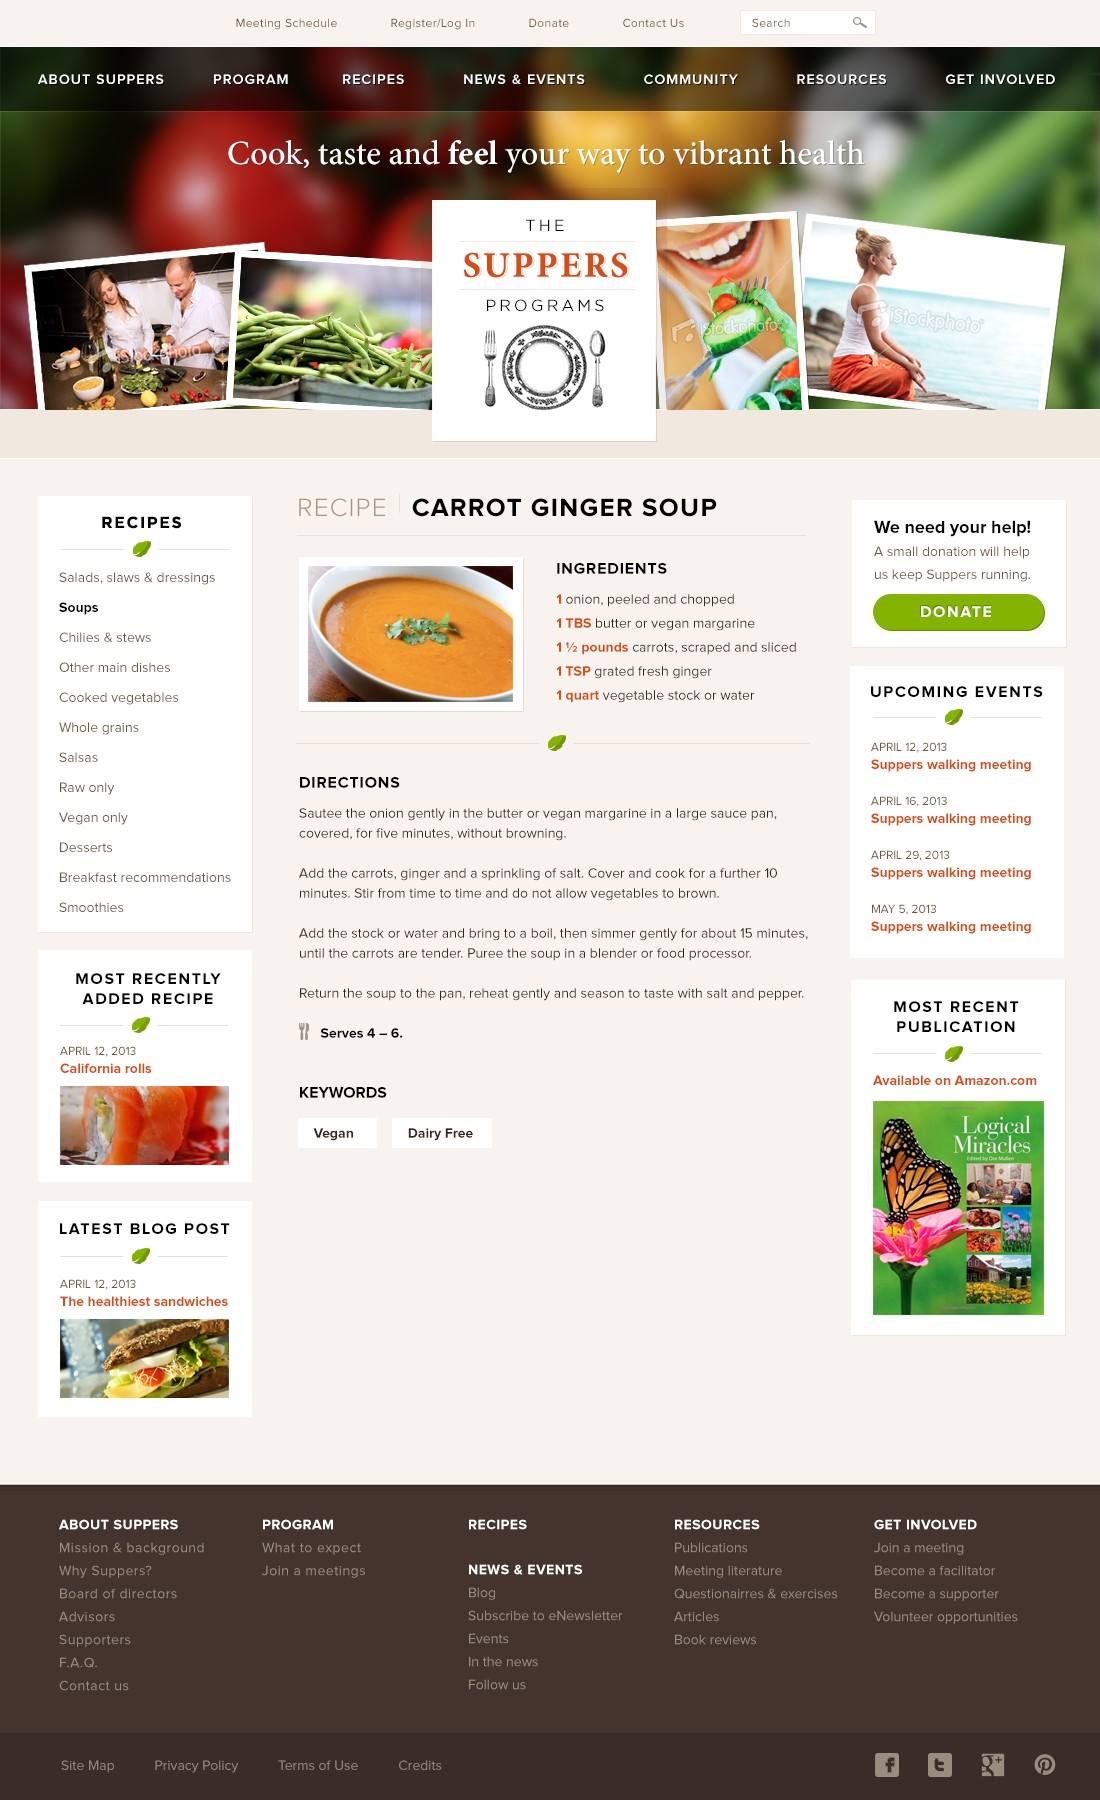 The Suppers Programs needs a new website design